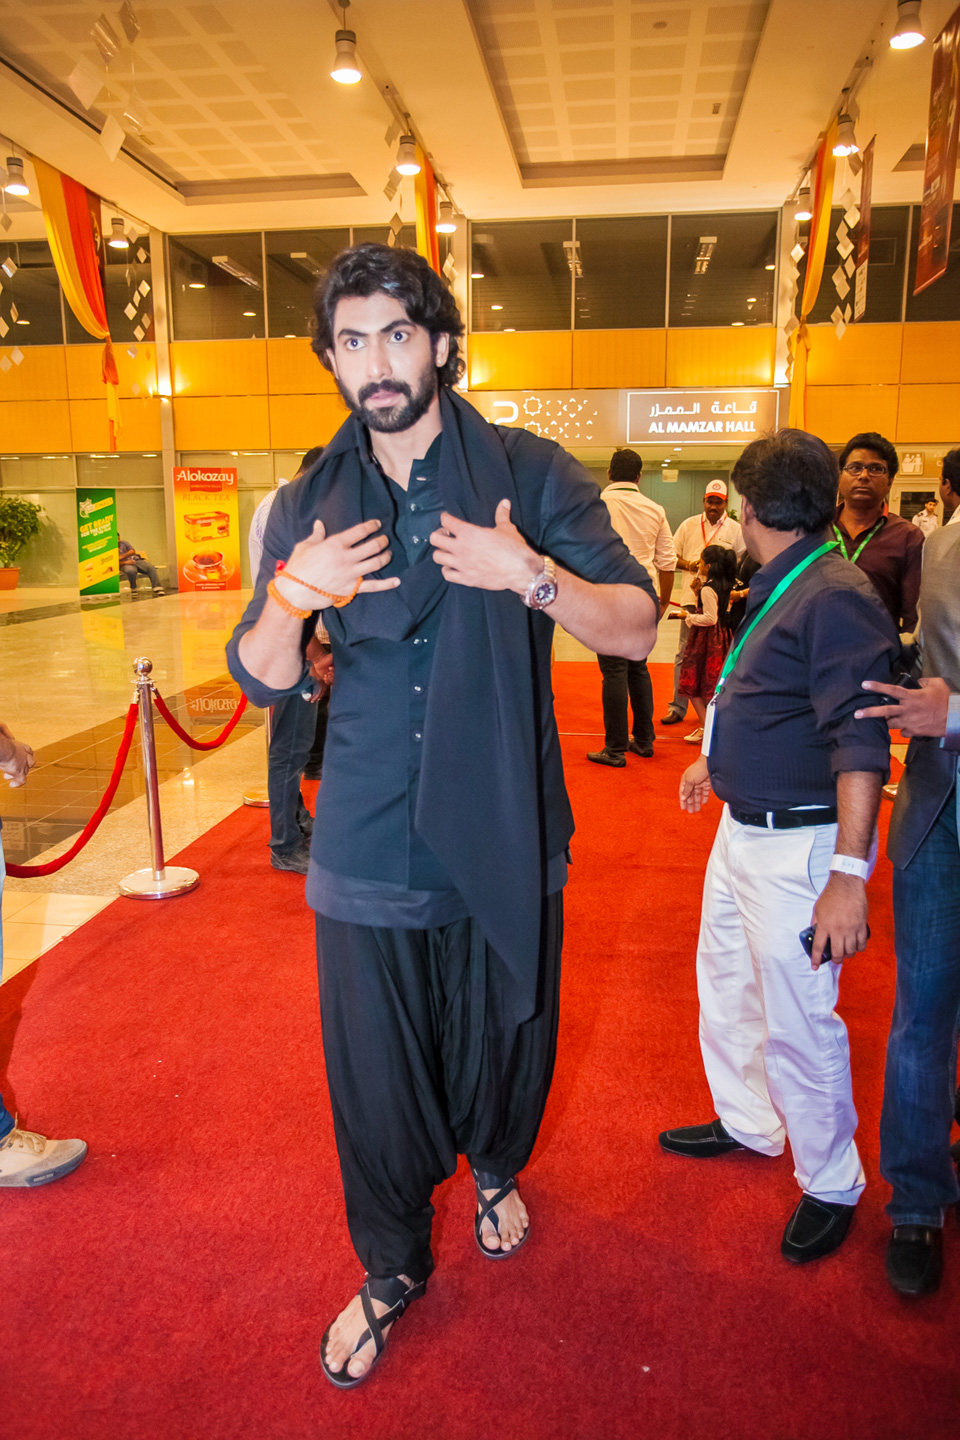 www.tvn.hu imagesize:960x1440 lsm e Celebrities at SIIMA 2013 Red Carpet Photos